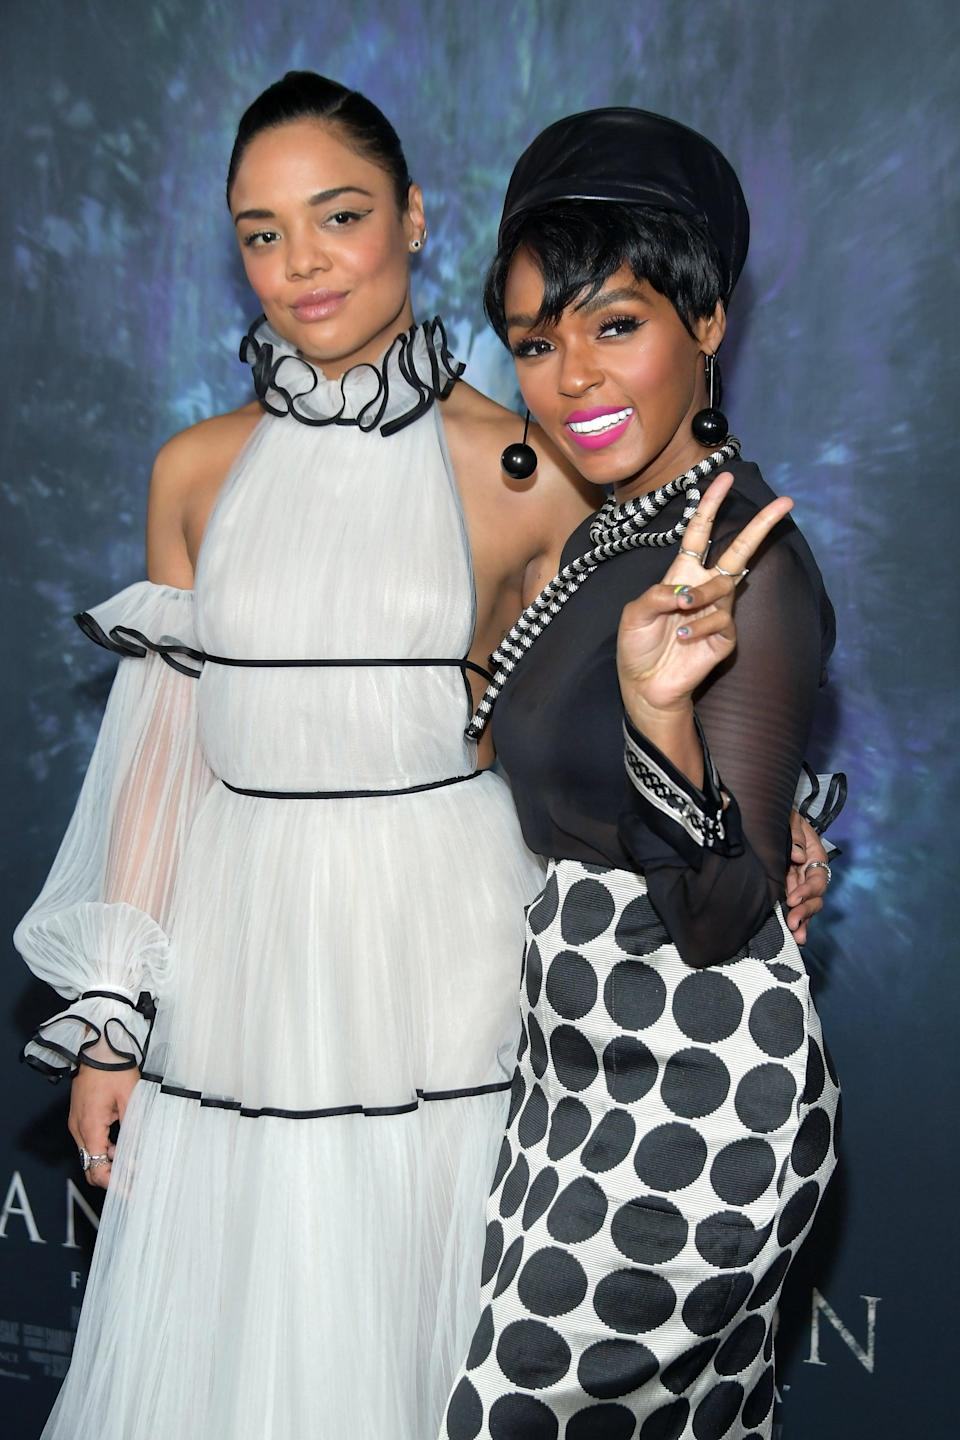 """<p>Speculation about Janelle Monáe and Tessa's relationship began in April 2015, when Tessa appeared as a backup dancer in <a href=""""https://www.youtube.com/watch?v=0OkB6p_FZAw"""" class=""""link rapid-noclick-resp"""" rel=""""nofollow noopener"""" target=""""_blank"""" data-ylk=""""slk:the singer's &quot;Yoga&quot; music video"""">the singer's """"Yoga"""" music video</a>. The pair were then photographed for the first time together the following month <a href=""""https://www.gettyimages.com/detail/news-photo/recording-artist-janelle-monae-and-actress-tessa-thompson-news-photo/475334974"""" class=""""link rapid-noclick-resp"""" rel=""""nofollow noopener"""" target=""""_blank"""" data-ylk=""""slk:at the 2015 MOCA gala"""">at the 2015 MOCA gala</a>. Romance rumors around the duo intensified at the beginning of 2018, after <a href=""""https://www.vulture.com/2018/04/tessa-thompson-janelle-monae-are-star-crossed-lovers-in-album-visual.html"""" class=""""link rapid-noclick-resp"""" rel=""""nofollow noopener"""" target=""""_blank"""" data-ylk=""""slk:they played star-crossed lovers"""">they played star-crossed lovers</a> in the <a href=""""https://www.youtube.com/watch?v=jdH2Sy-BlNE"""" class=""""link rapid-noclick-resp"""" rel=""""nofollow noopener"""" target=""""_blank"""" data-ylk=""""slk:&quot;emotion picture&quot; version"""">""""emotion picture"""" version</a> of Janelle's <strong>Dirty Computer</strong> album and attended the Los Angeles premiere of <strong>Annihilation</strong>.</p> <p>During an interview with <strong>Porter Edit</strong> in June 2018, <a href=""""https://www.net-a-porter.com/en-ca/porter/article-502e16f70e0351fa"""" class=""""link rapid-noclick-resp"""" rel=""""nofollow noopener"""" target=""""_blank"""" data-ylk=""""slk:Tessa addressed the rumors head-on"""">Tessa addressed the rumors head-on</a>. """"It's tricky, because Janelle and I are just really private people and we're both trying to navigate how you reconcile wanting to have that privacy and space, and also wanting to use your platform and influence,"""" she said. </p> <p>Tessa continued, """"We love each other deeply. We're so close, we vibrate on the """